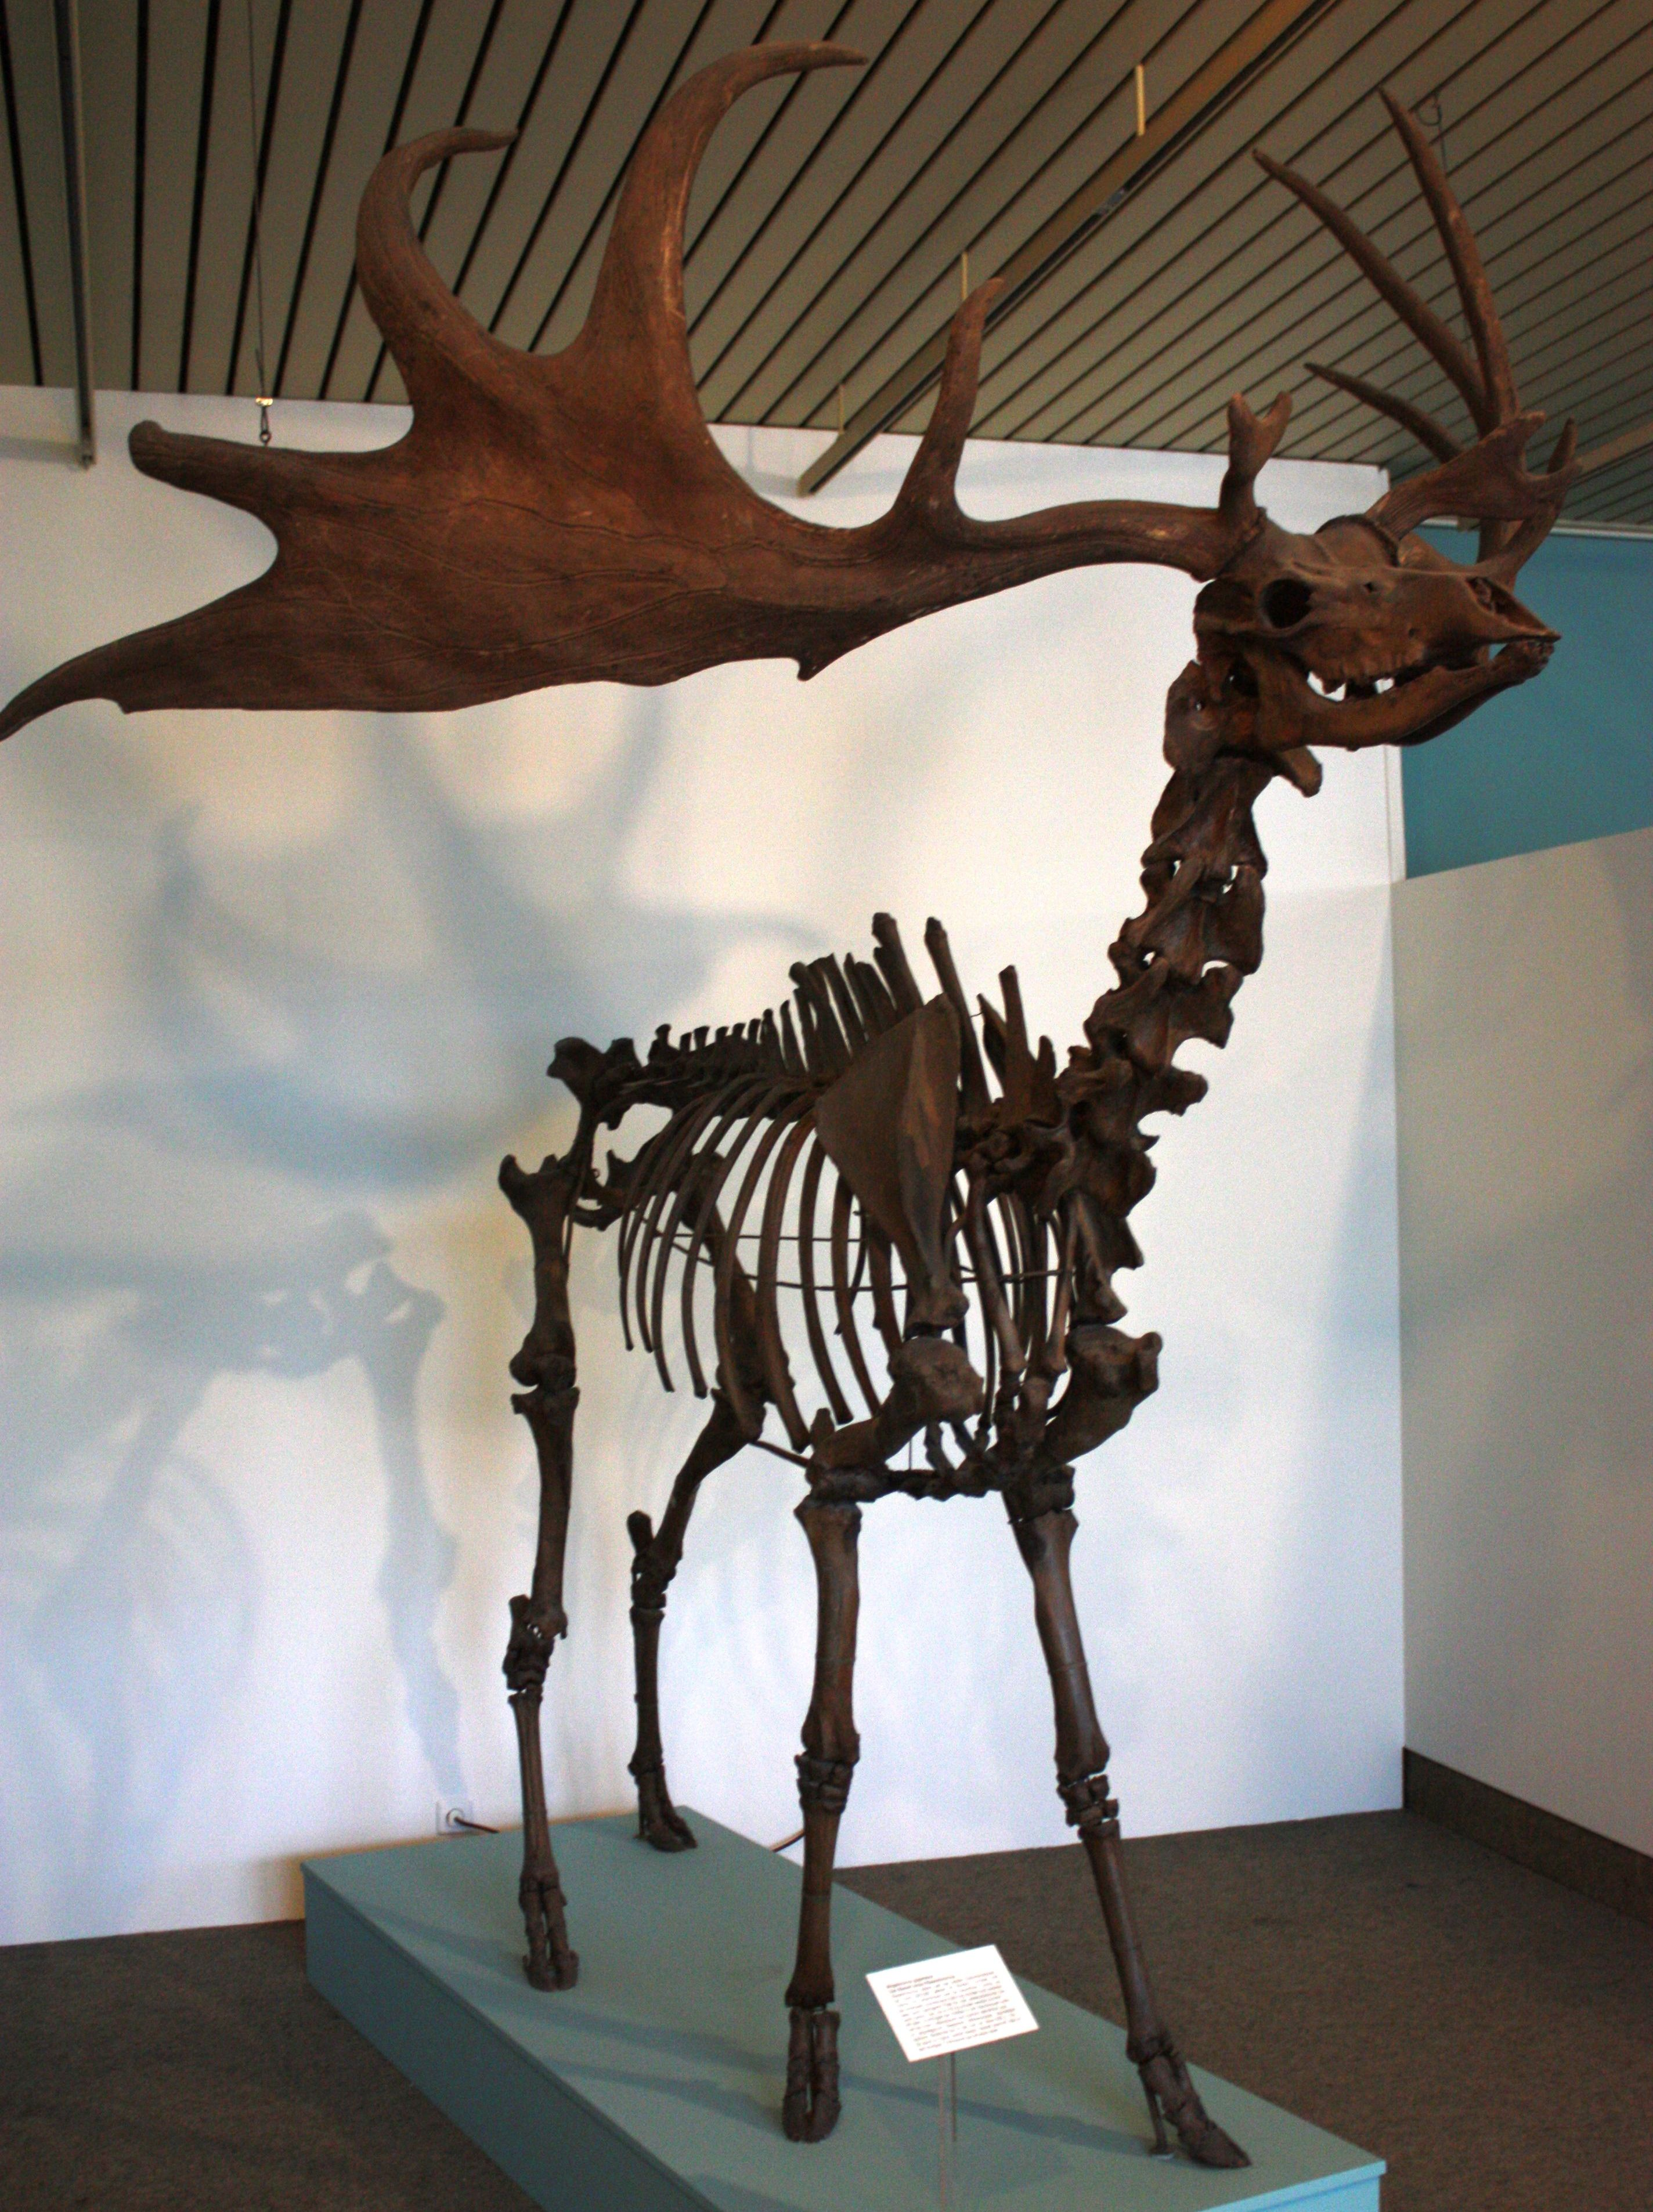 Irish-Elk-Skeleton. Streaming and creeping in the gathering darkness